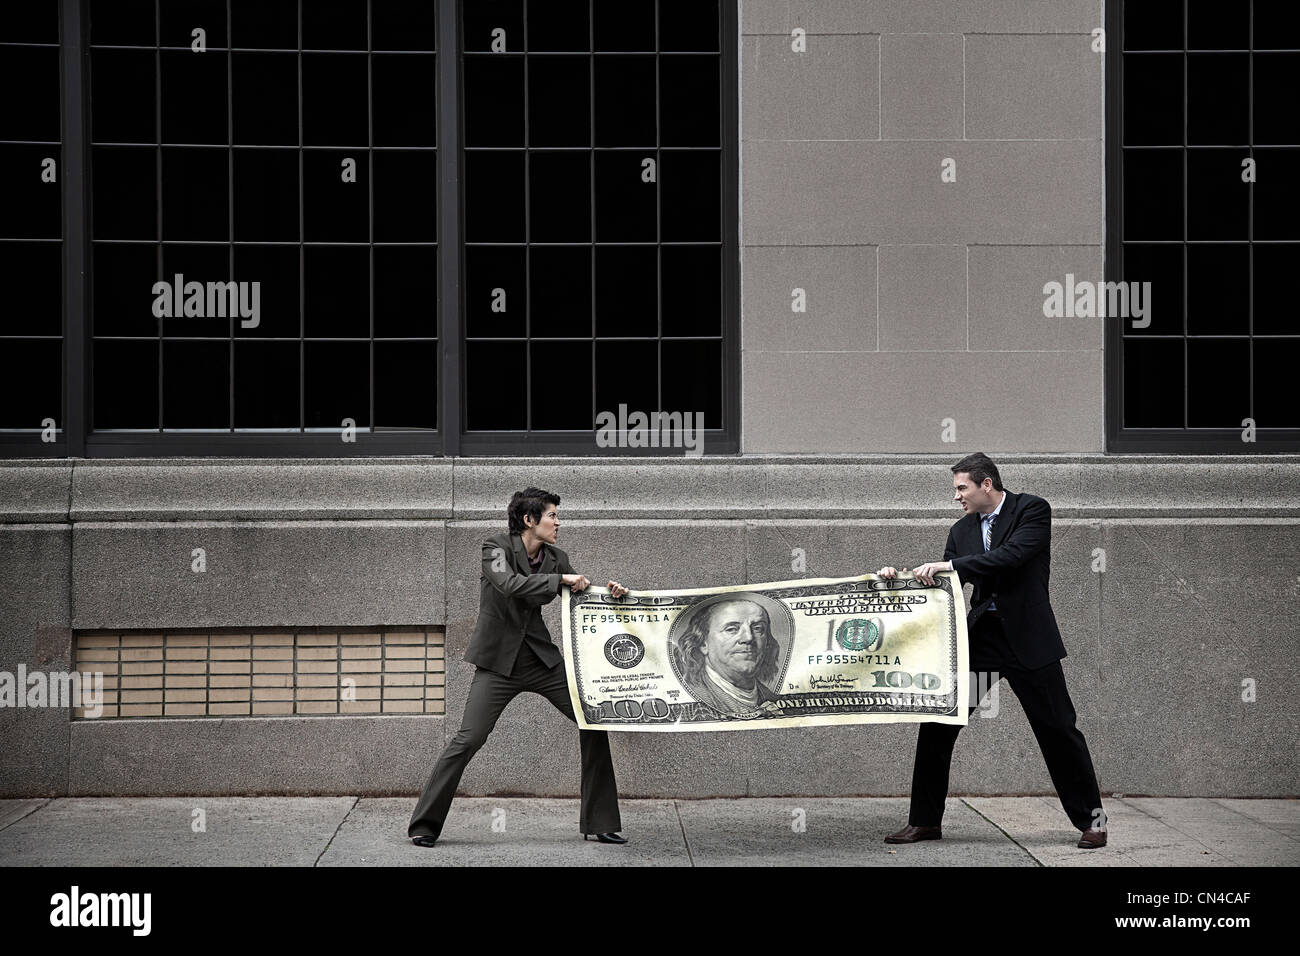 Man and woman fighting over large $100 bill - Stock Image